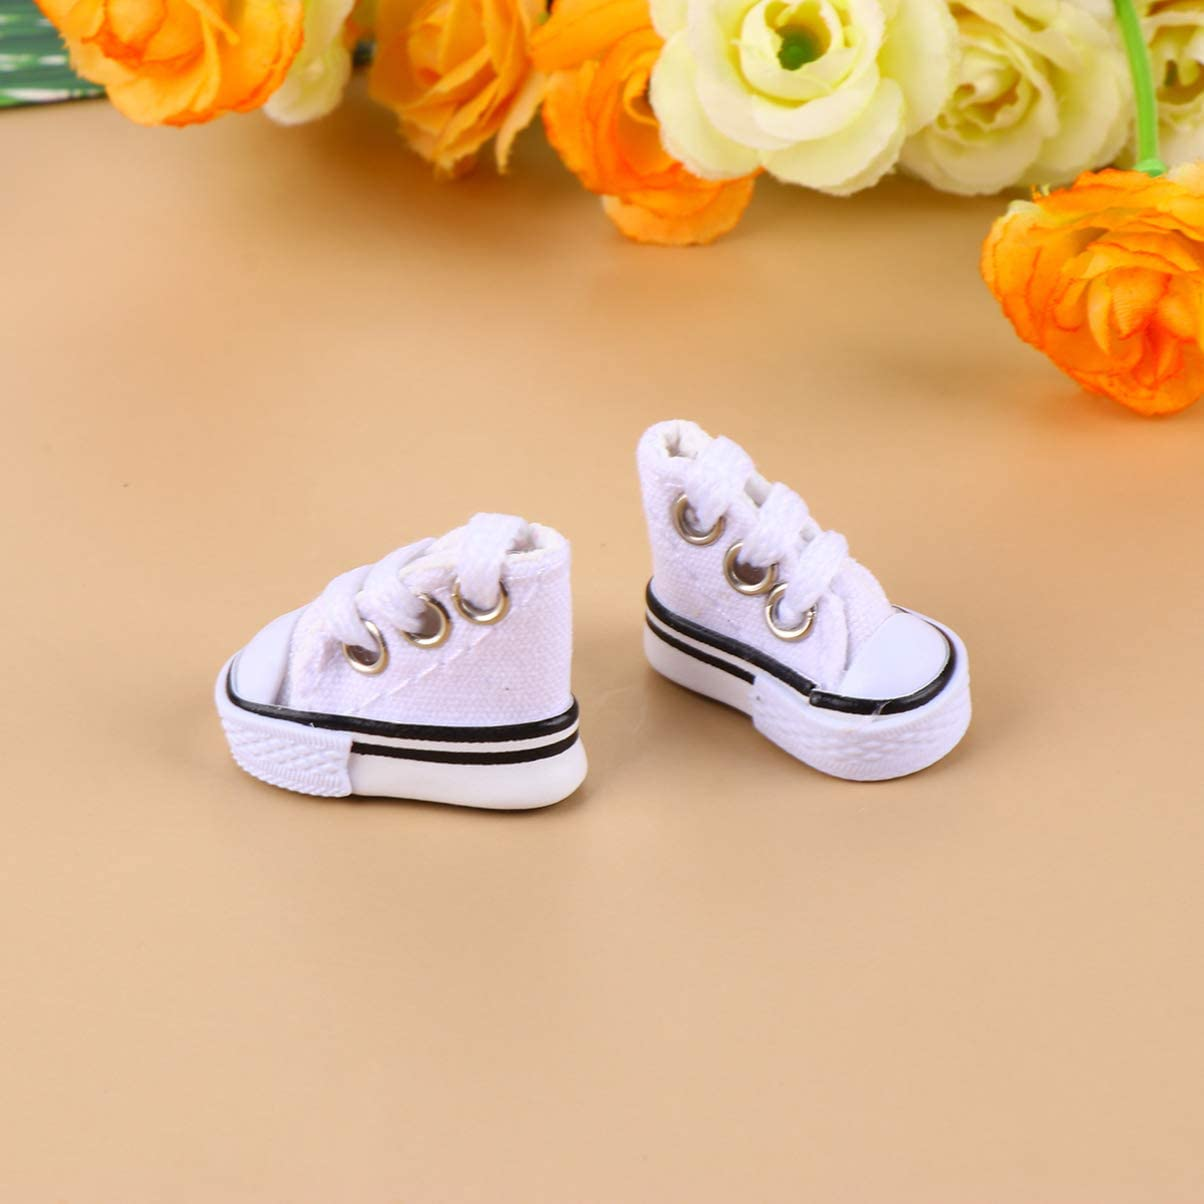 TOYANDONA 2 Pair Mini Sneakers Blue 3.5 cm Mini Canvas Shoes Finger Sneakers Toy Doll Sneakers